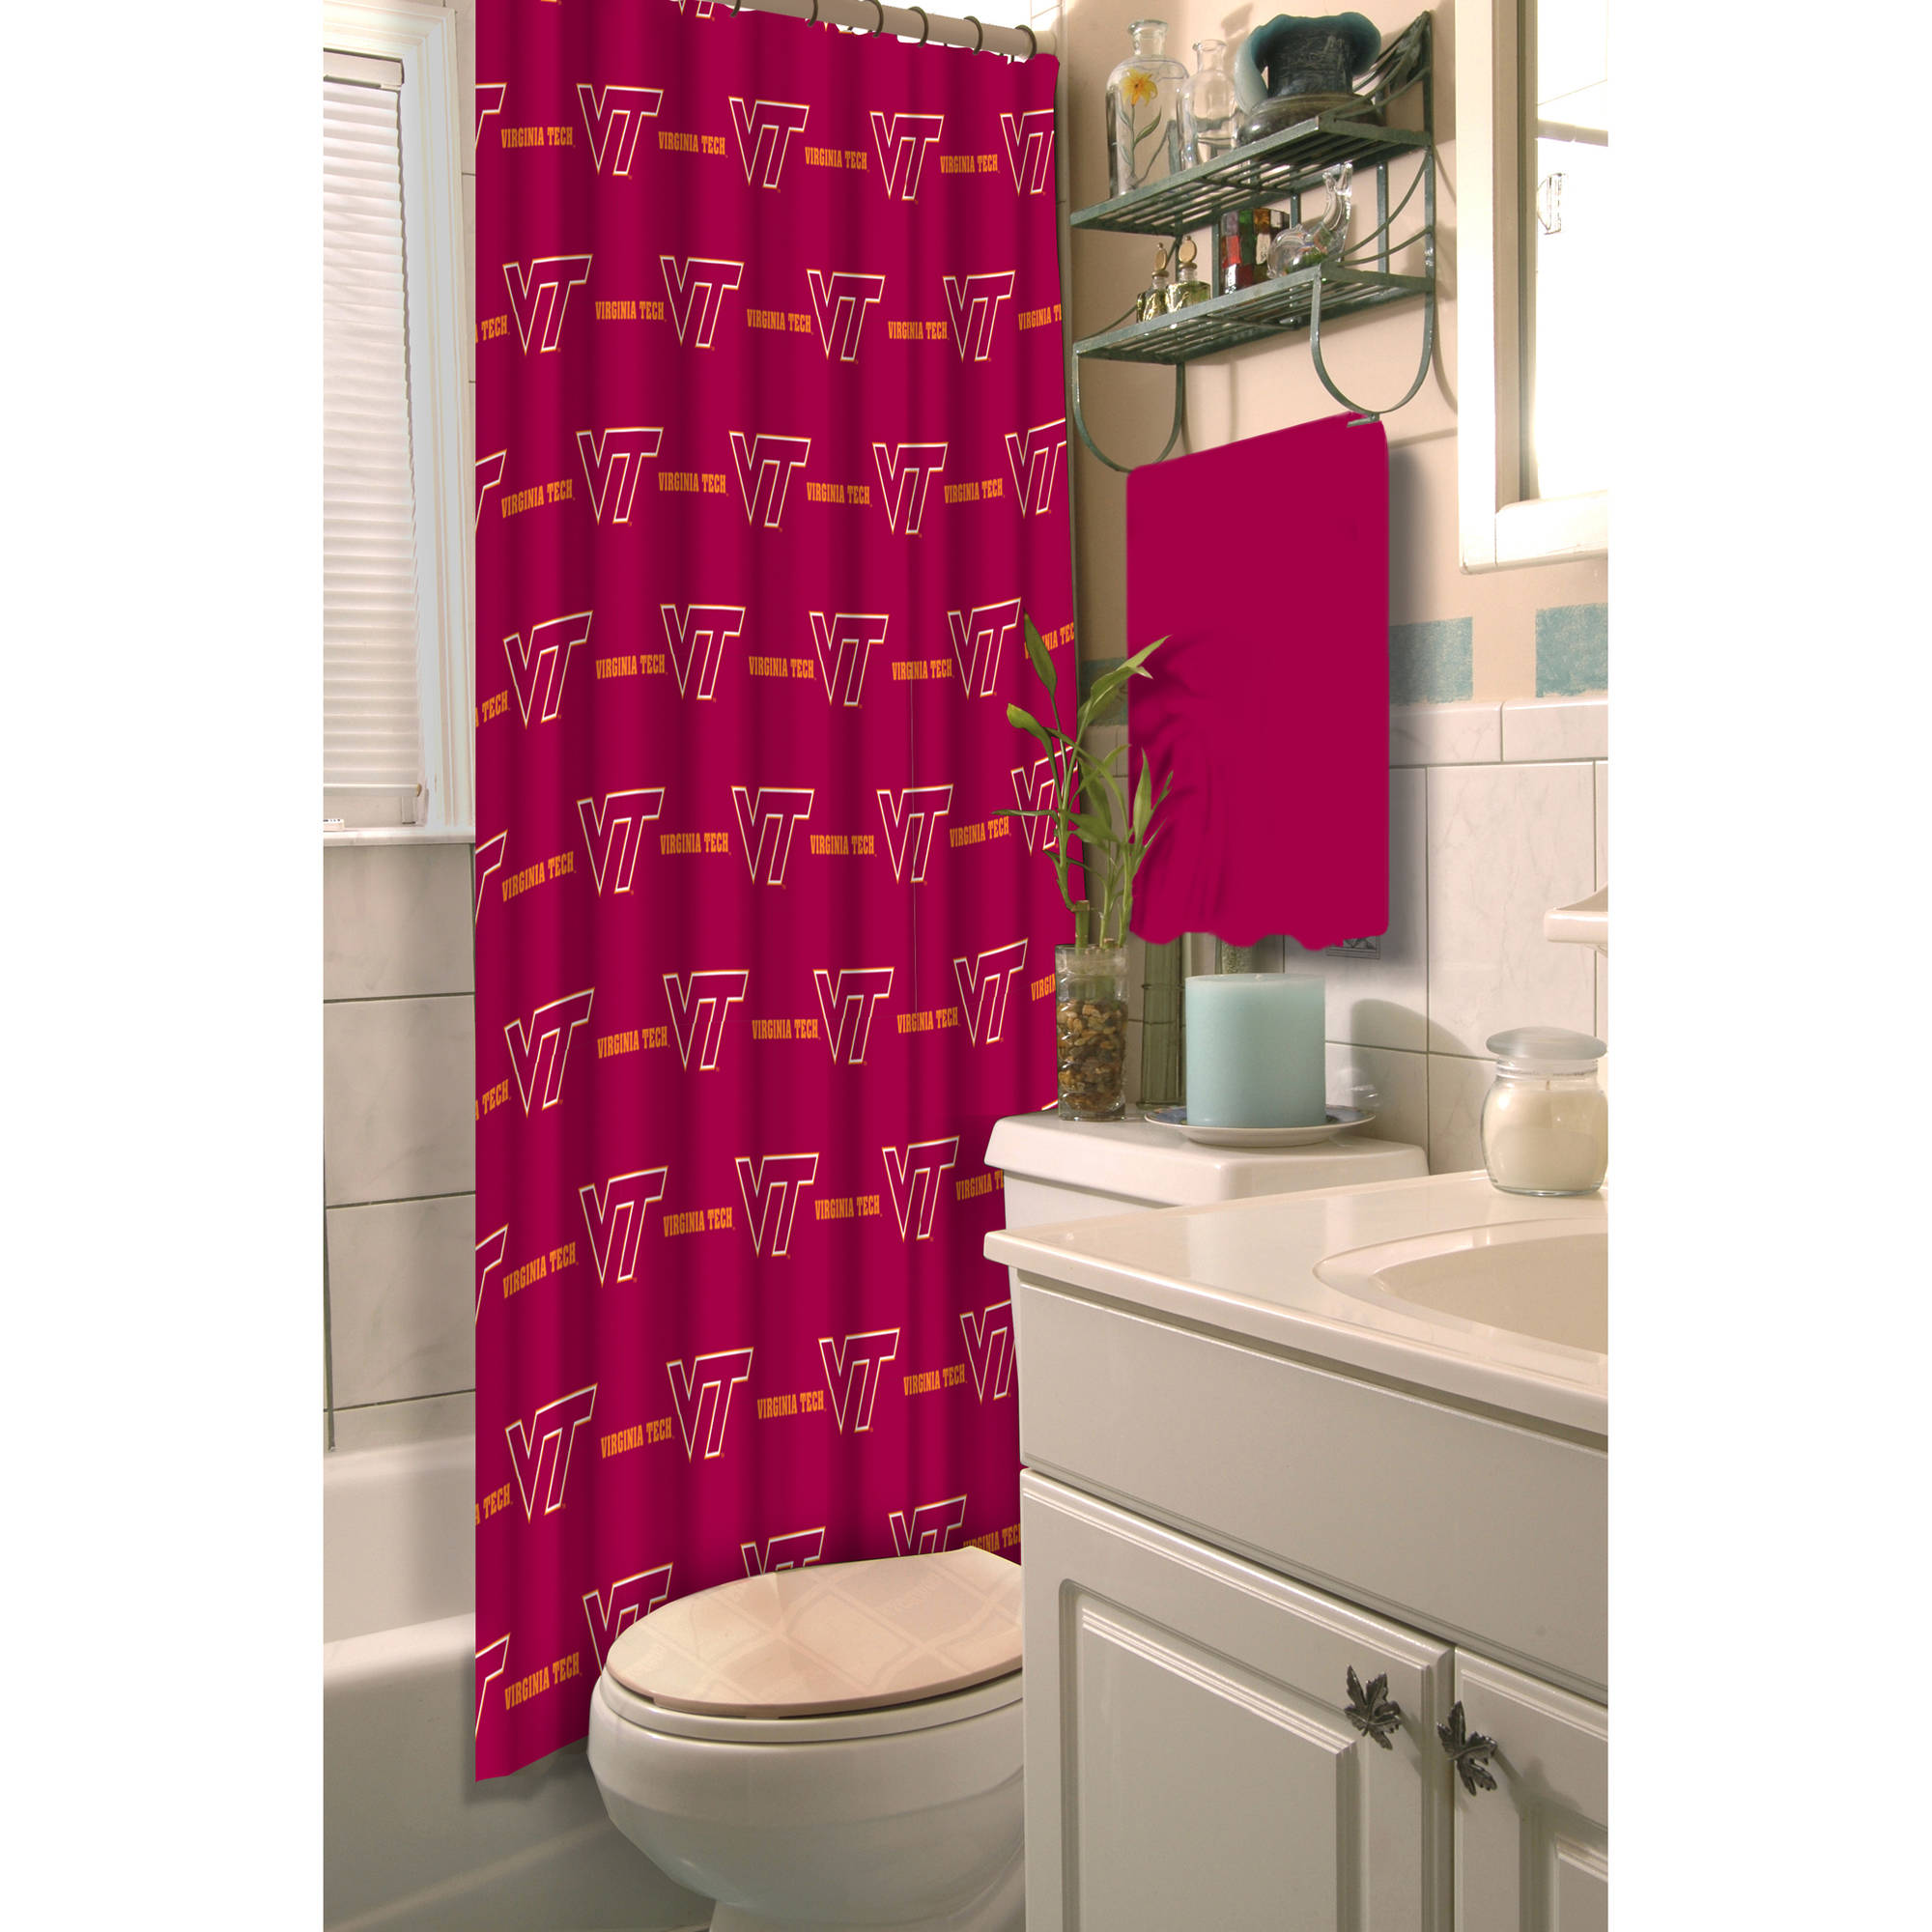 NCAA Shower Curtain, Virginia Tech